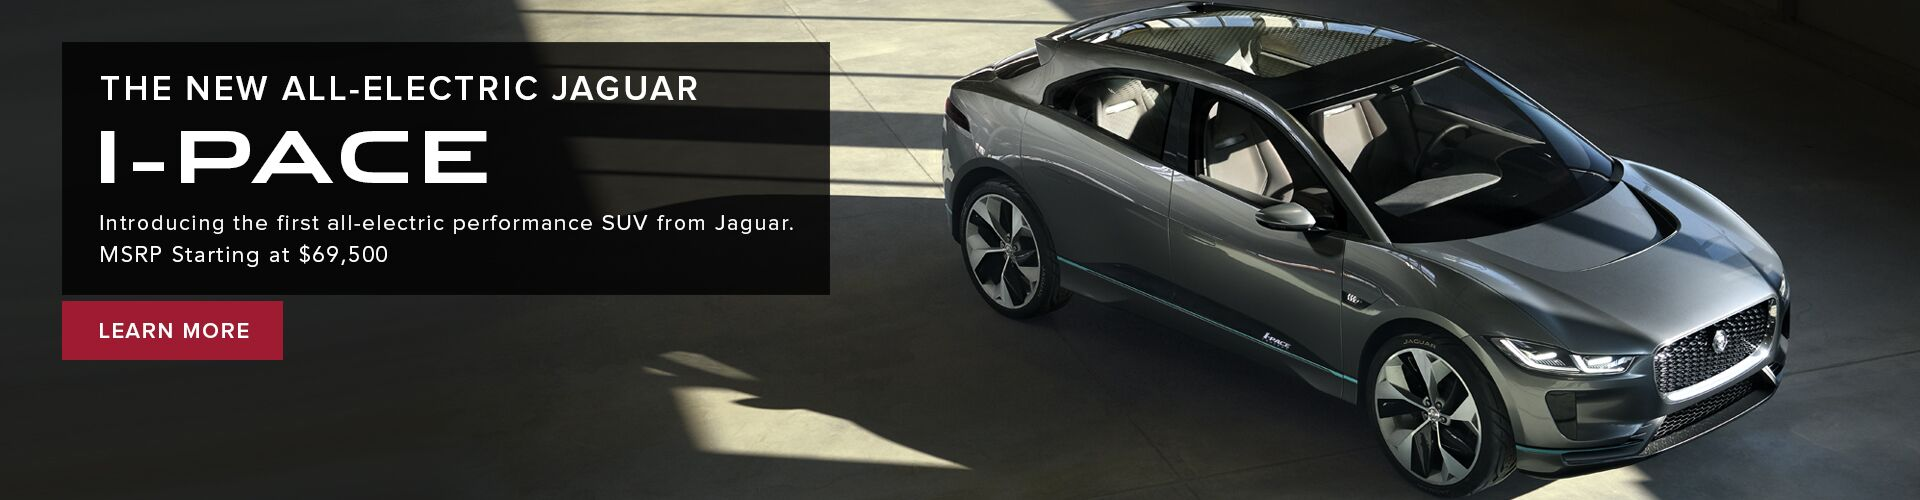 New Jaguar I-PACE